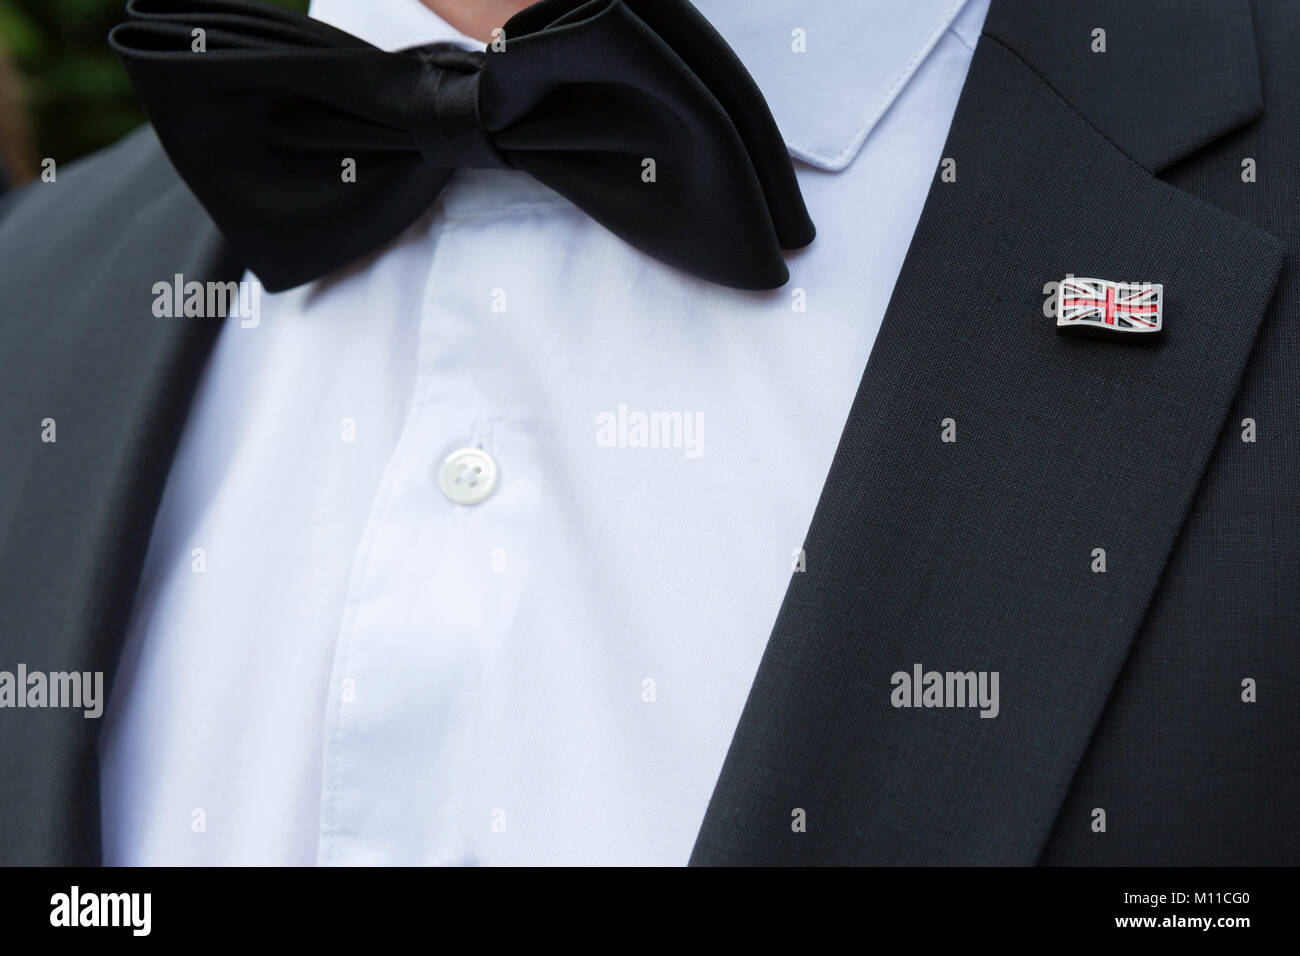 Man in formal dinner dress with black bow tie and British Union Jack flag lapel badge - Stock Image